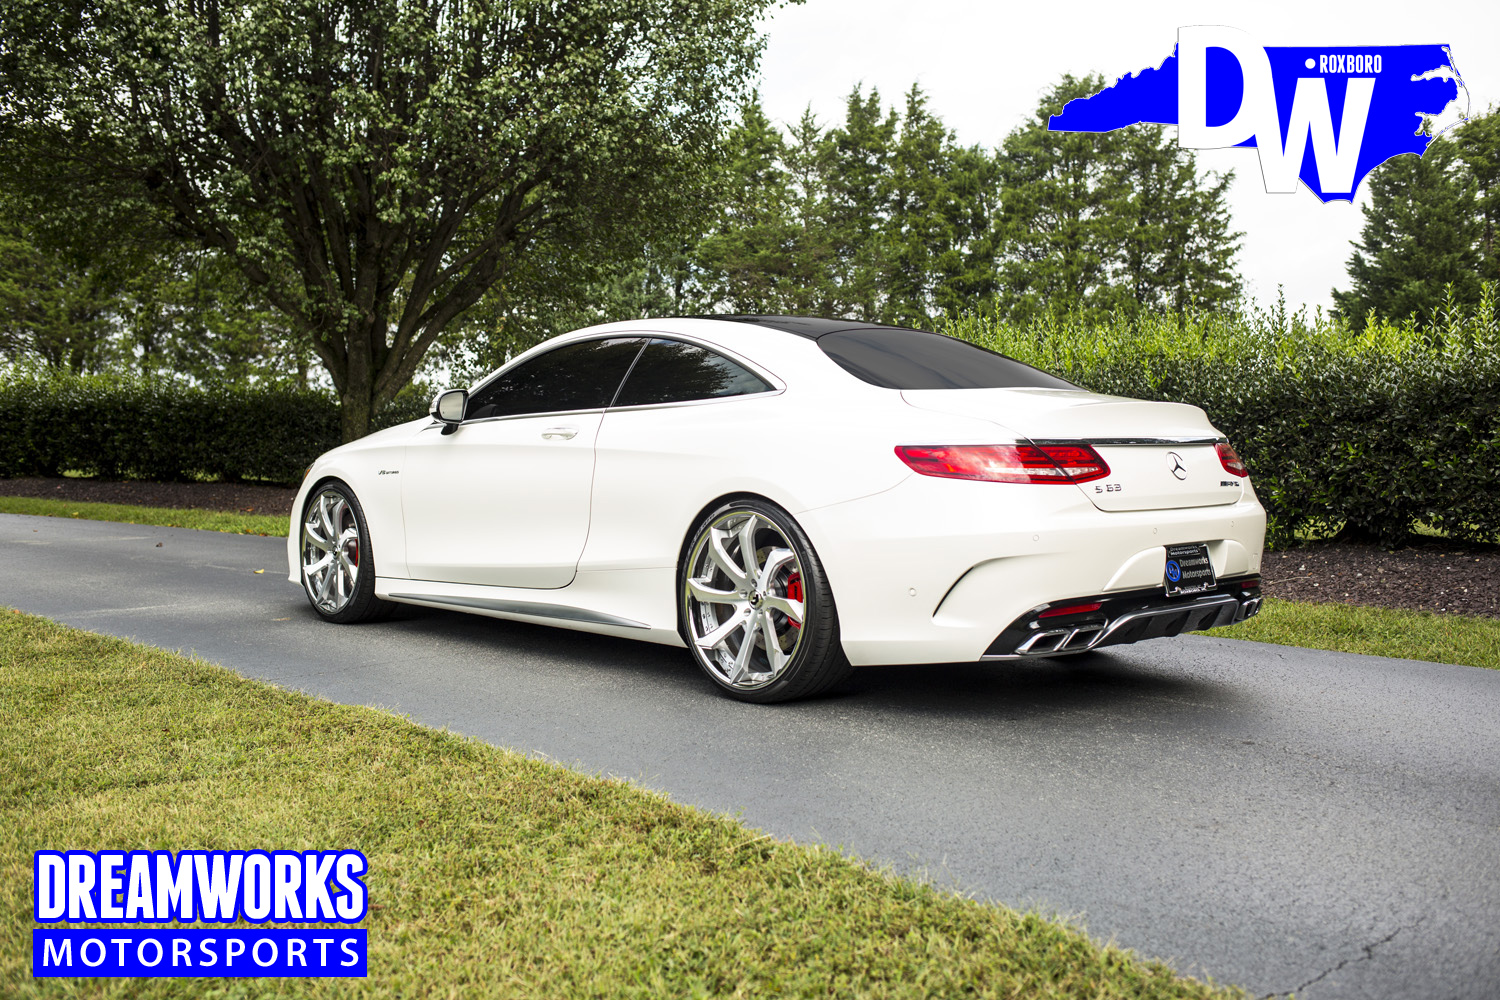 Mercedes-S-Coupe-by-Dreamworks-Motorsports-6.jpg